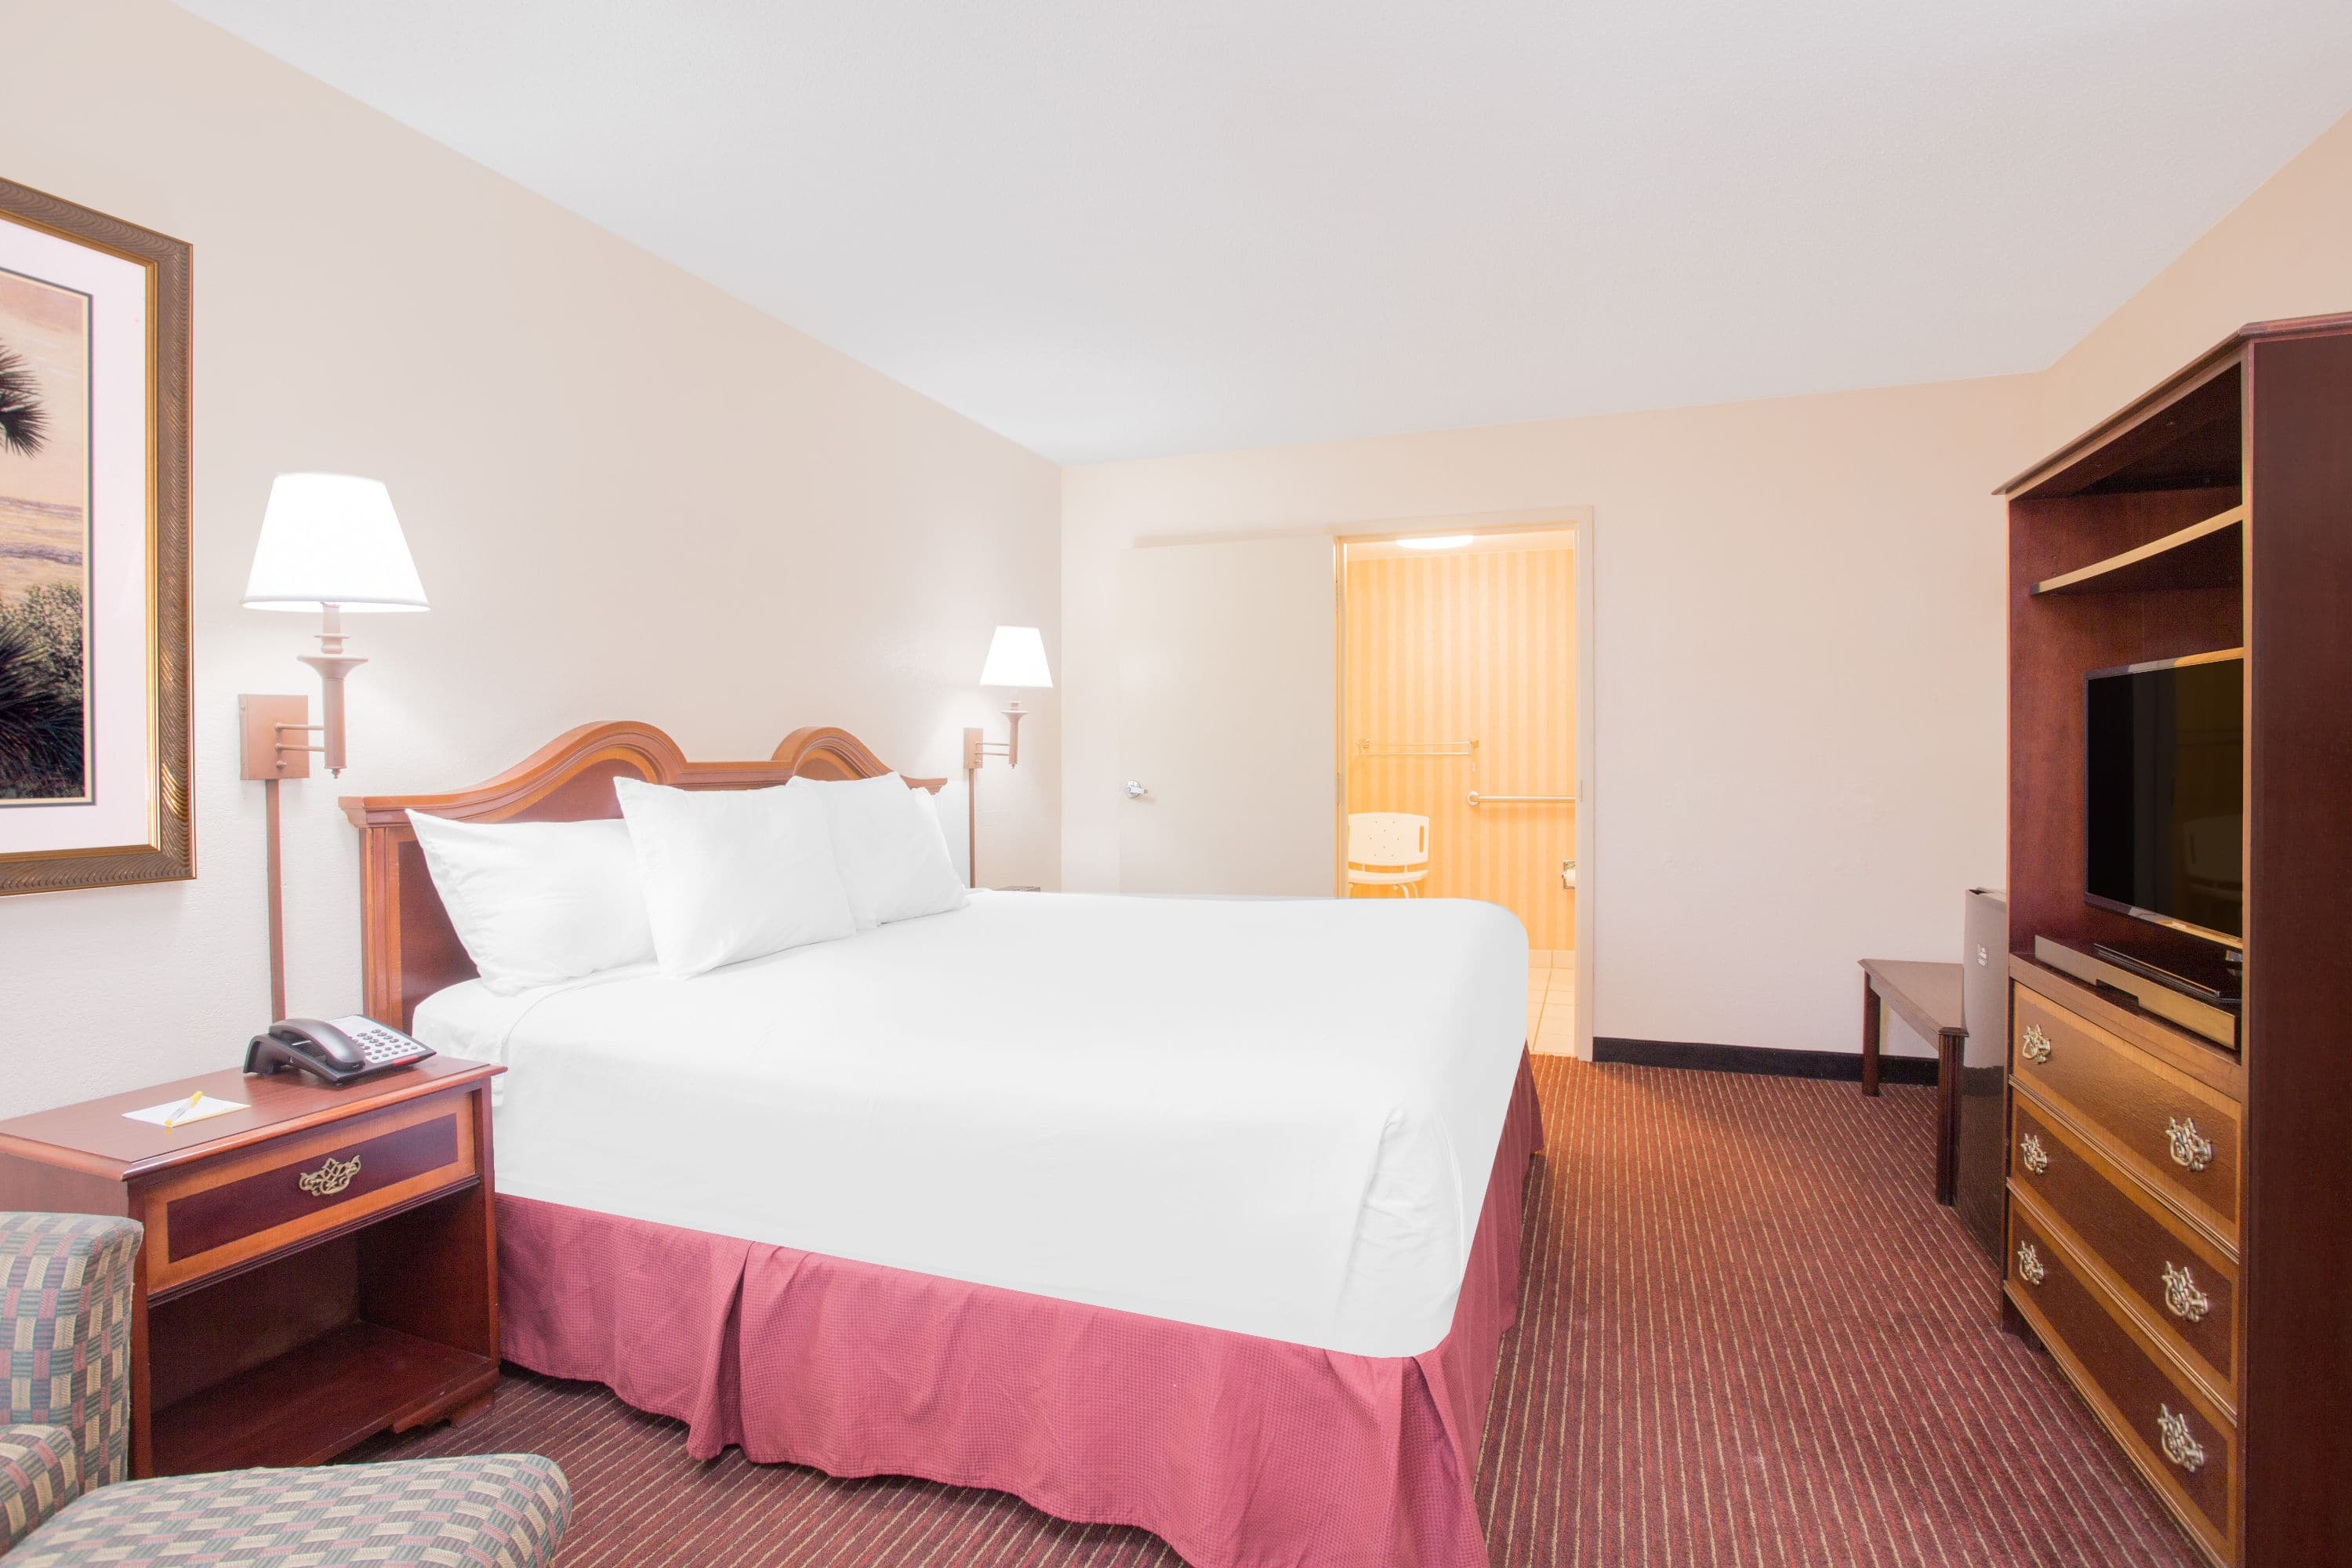 Guest Room At The Days Inn Dothan In Dothan, Alabama